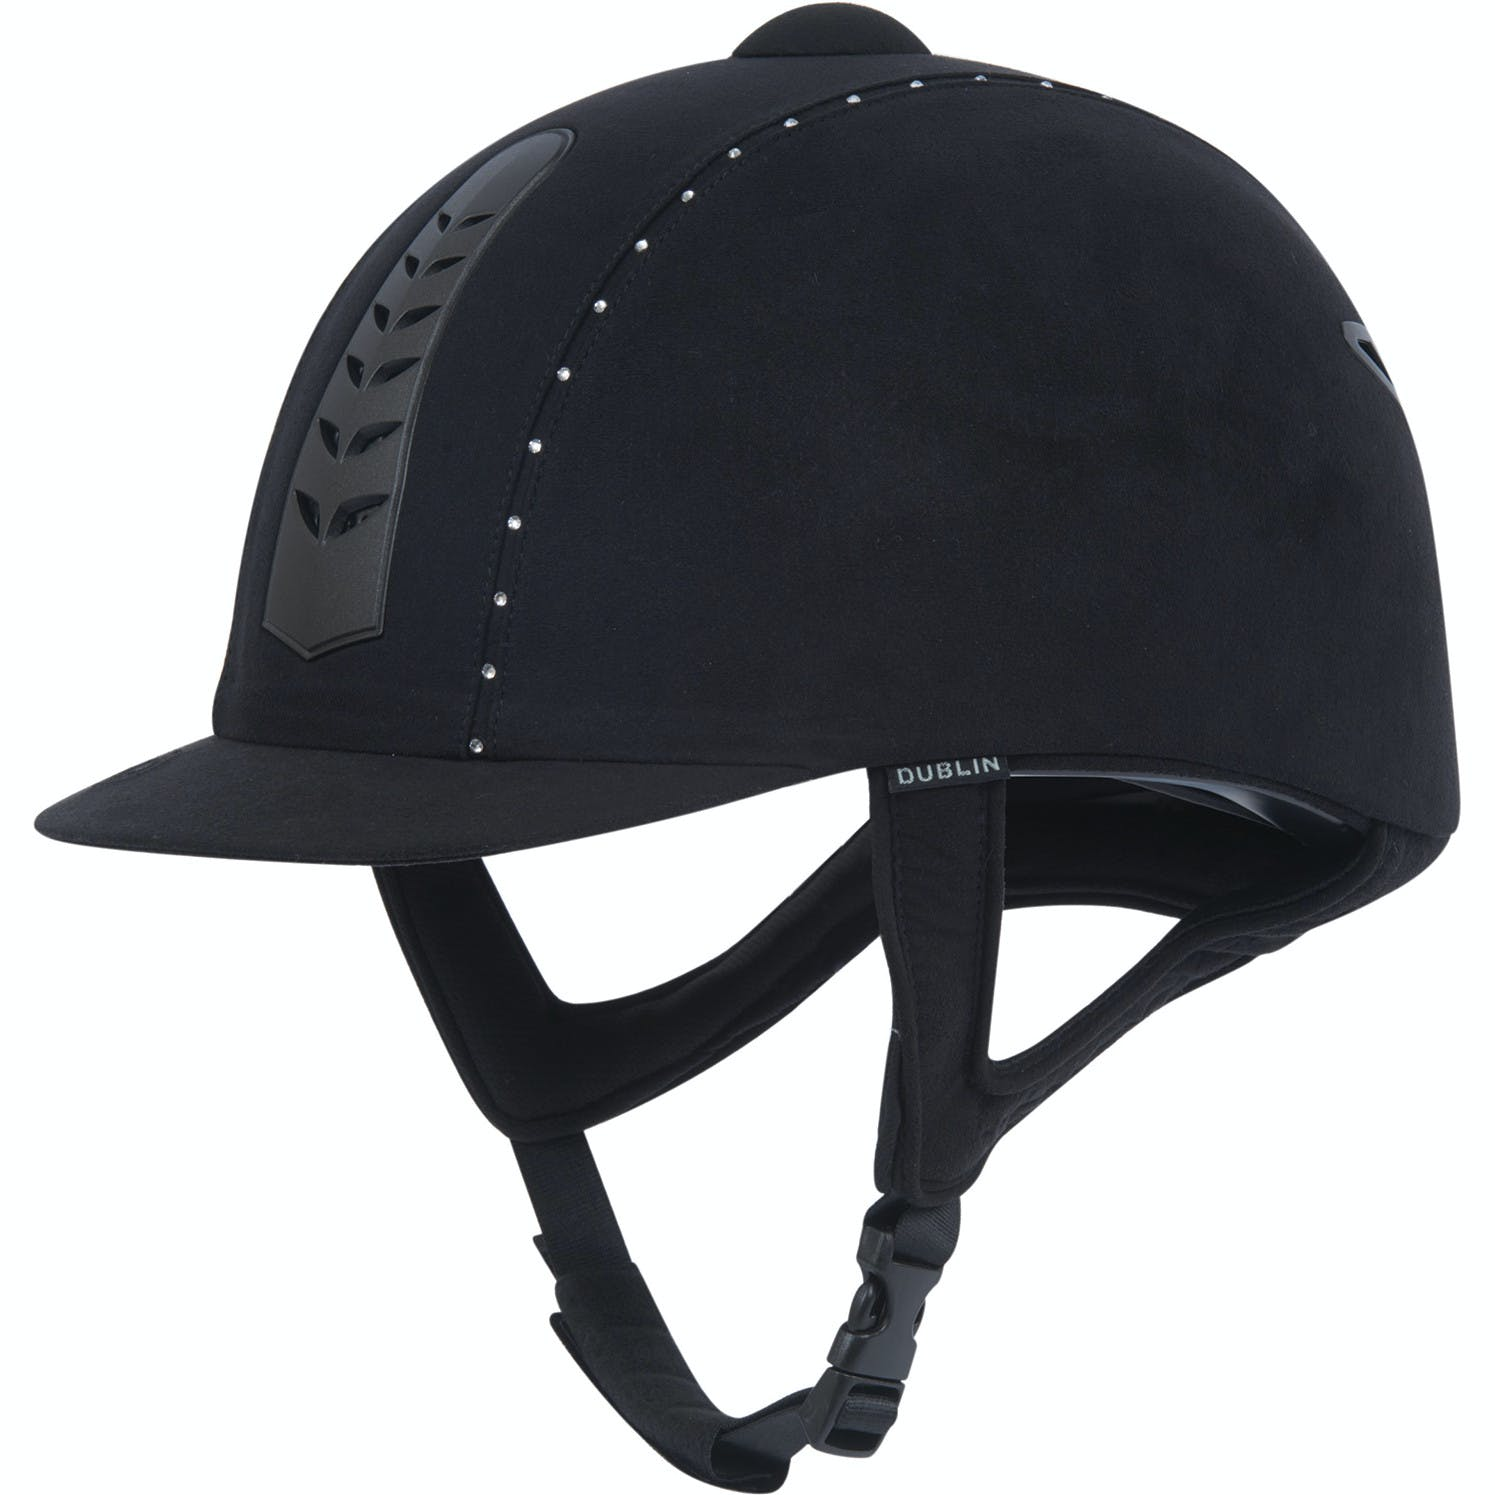 Dublin Silver Pro Diamante Riding Hat From Rideaway